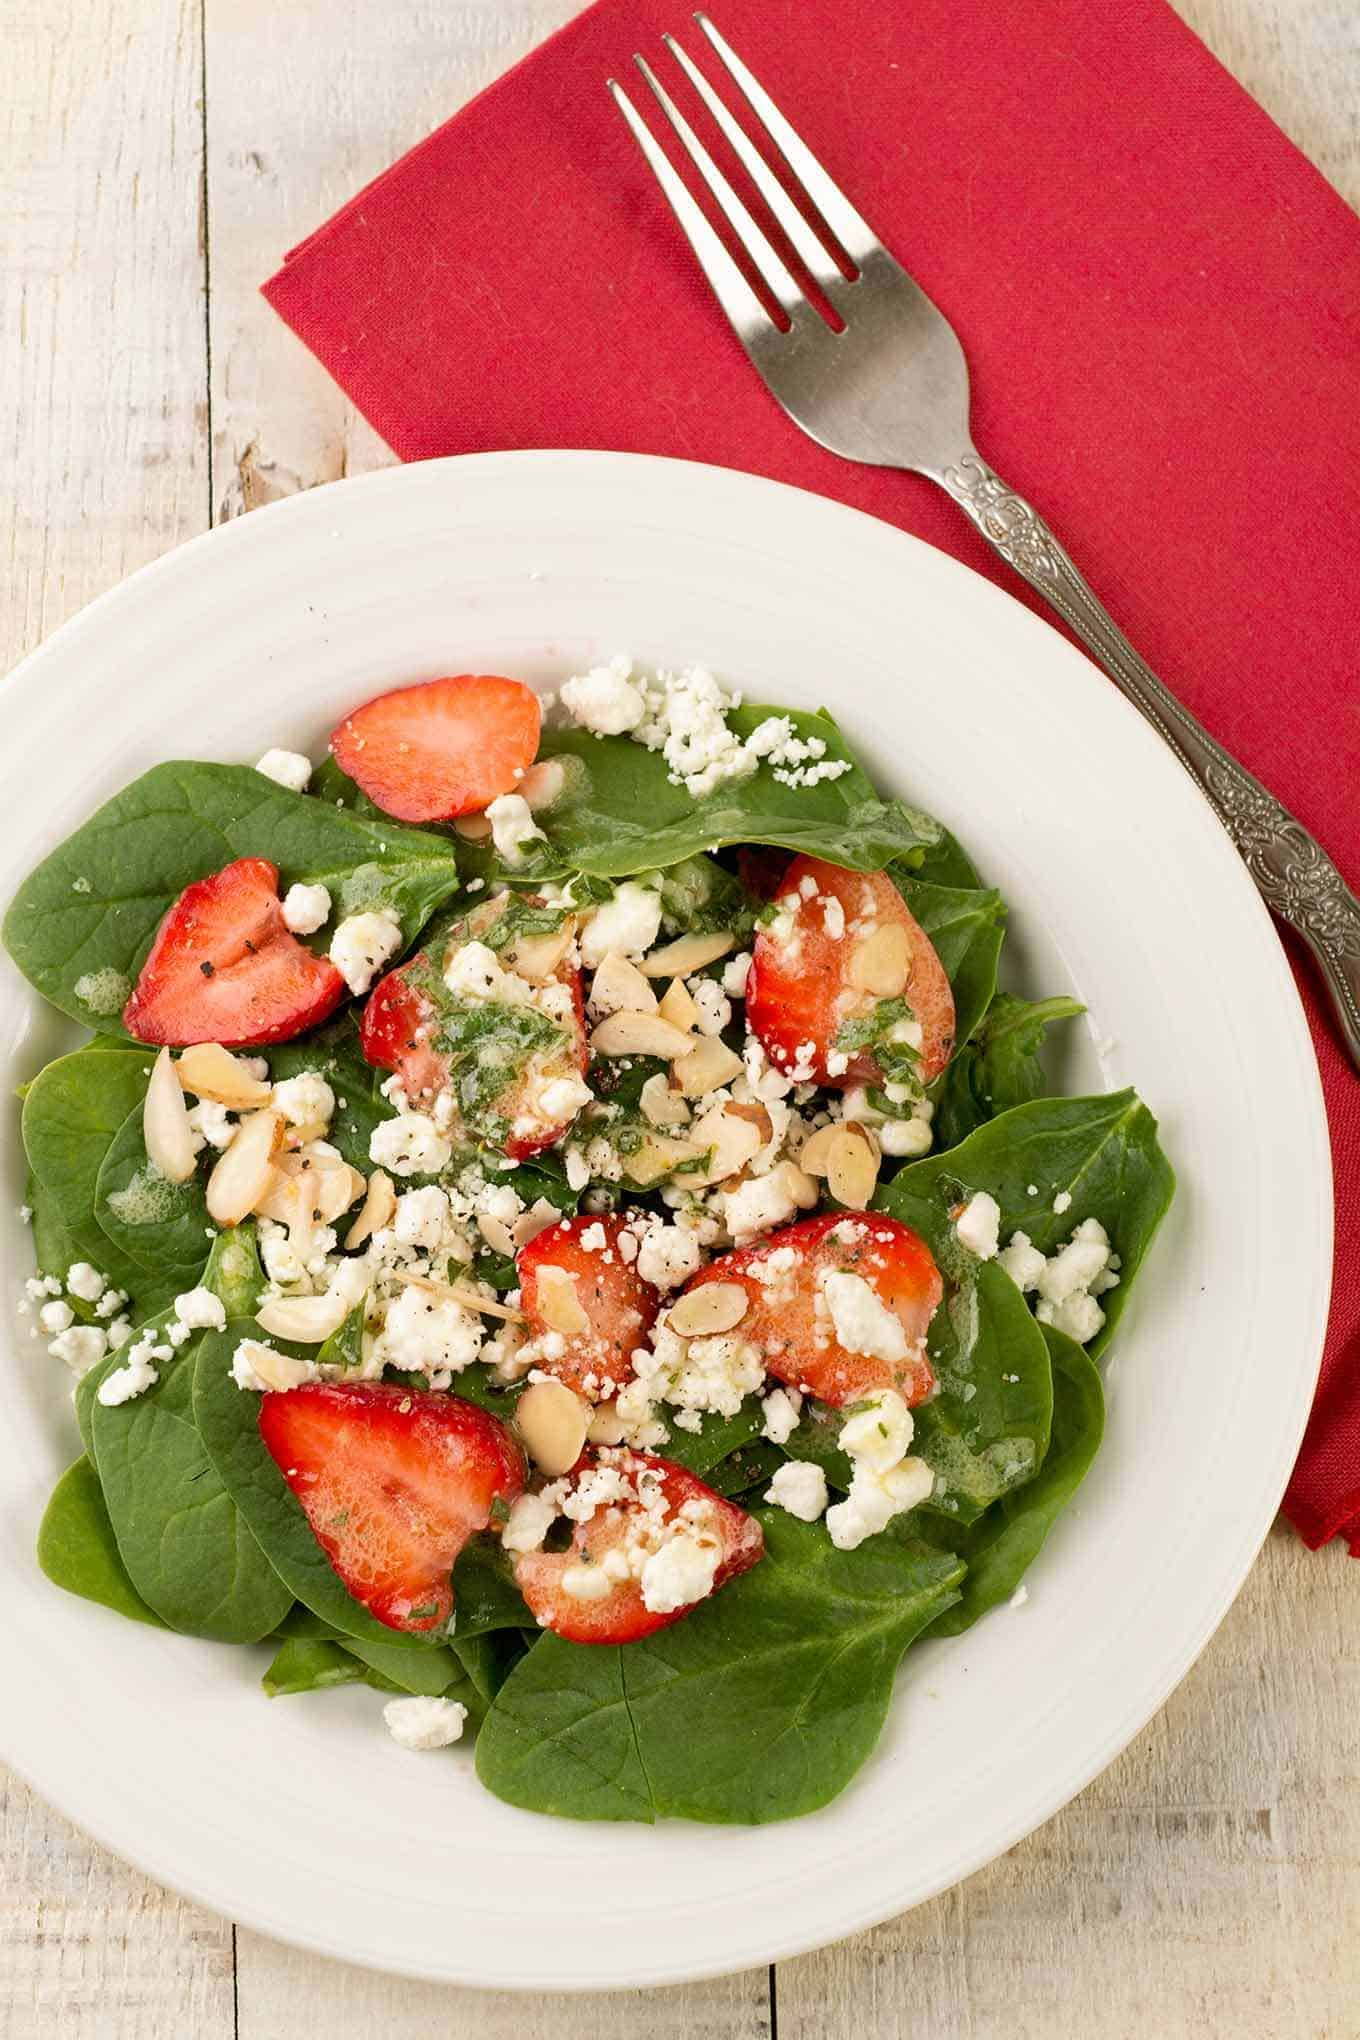 Single serving of spinach and strawberry salad topped with sliced almonds and crumbled goat cheese.